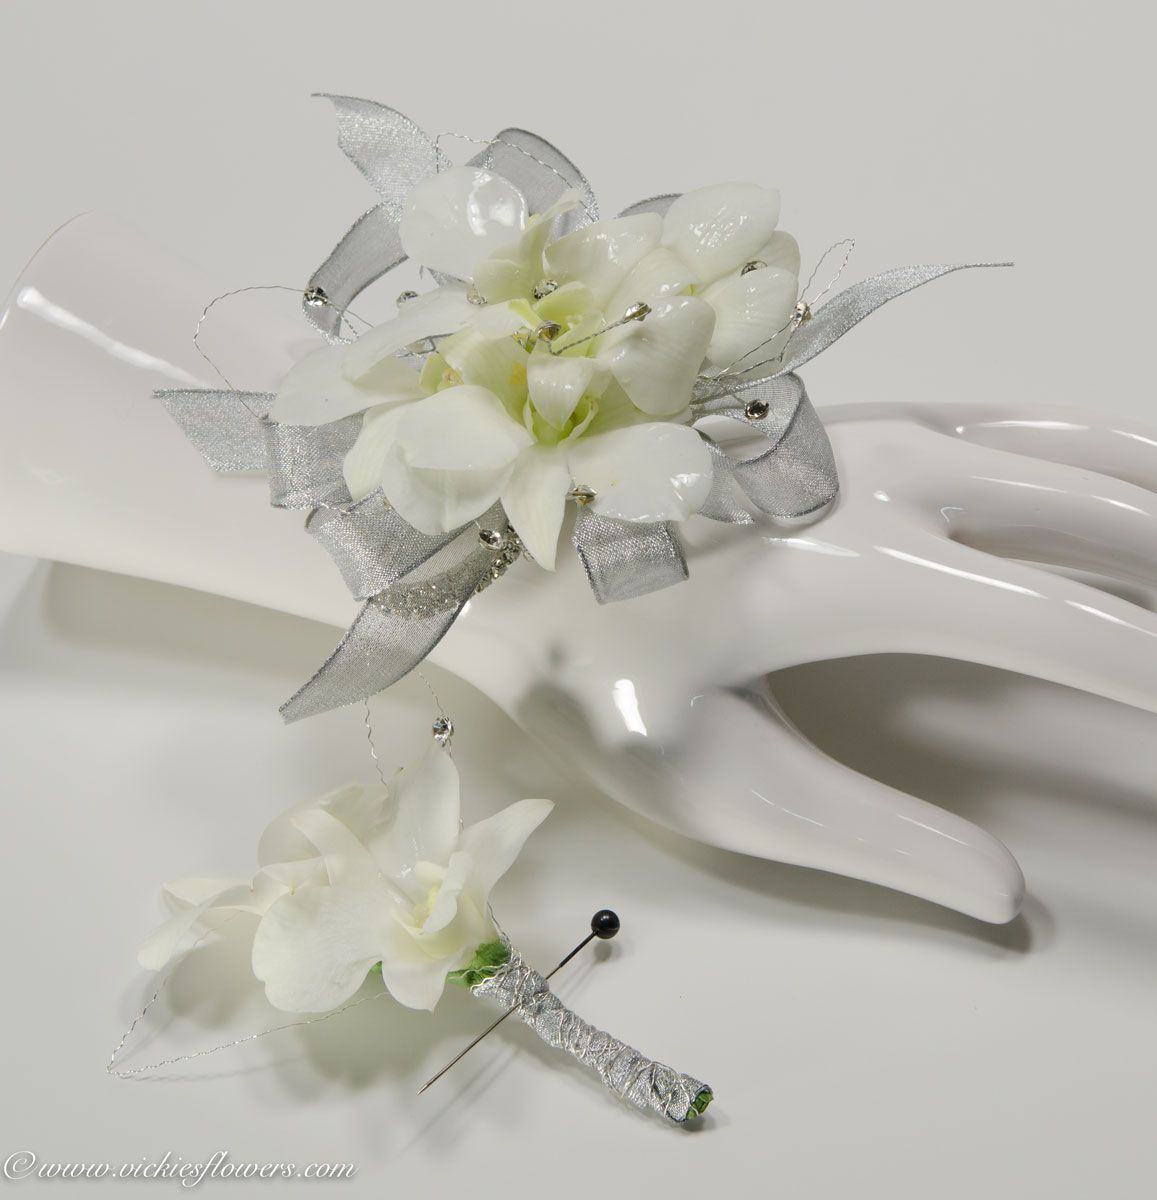 Pin by Candice Davis on Corsages | Pinterest | Corsage, Boutonnieres ...